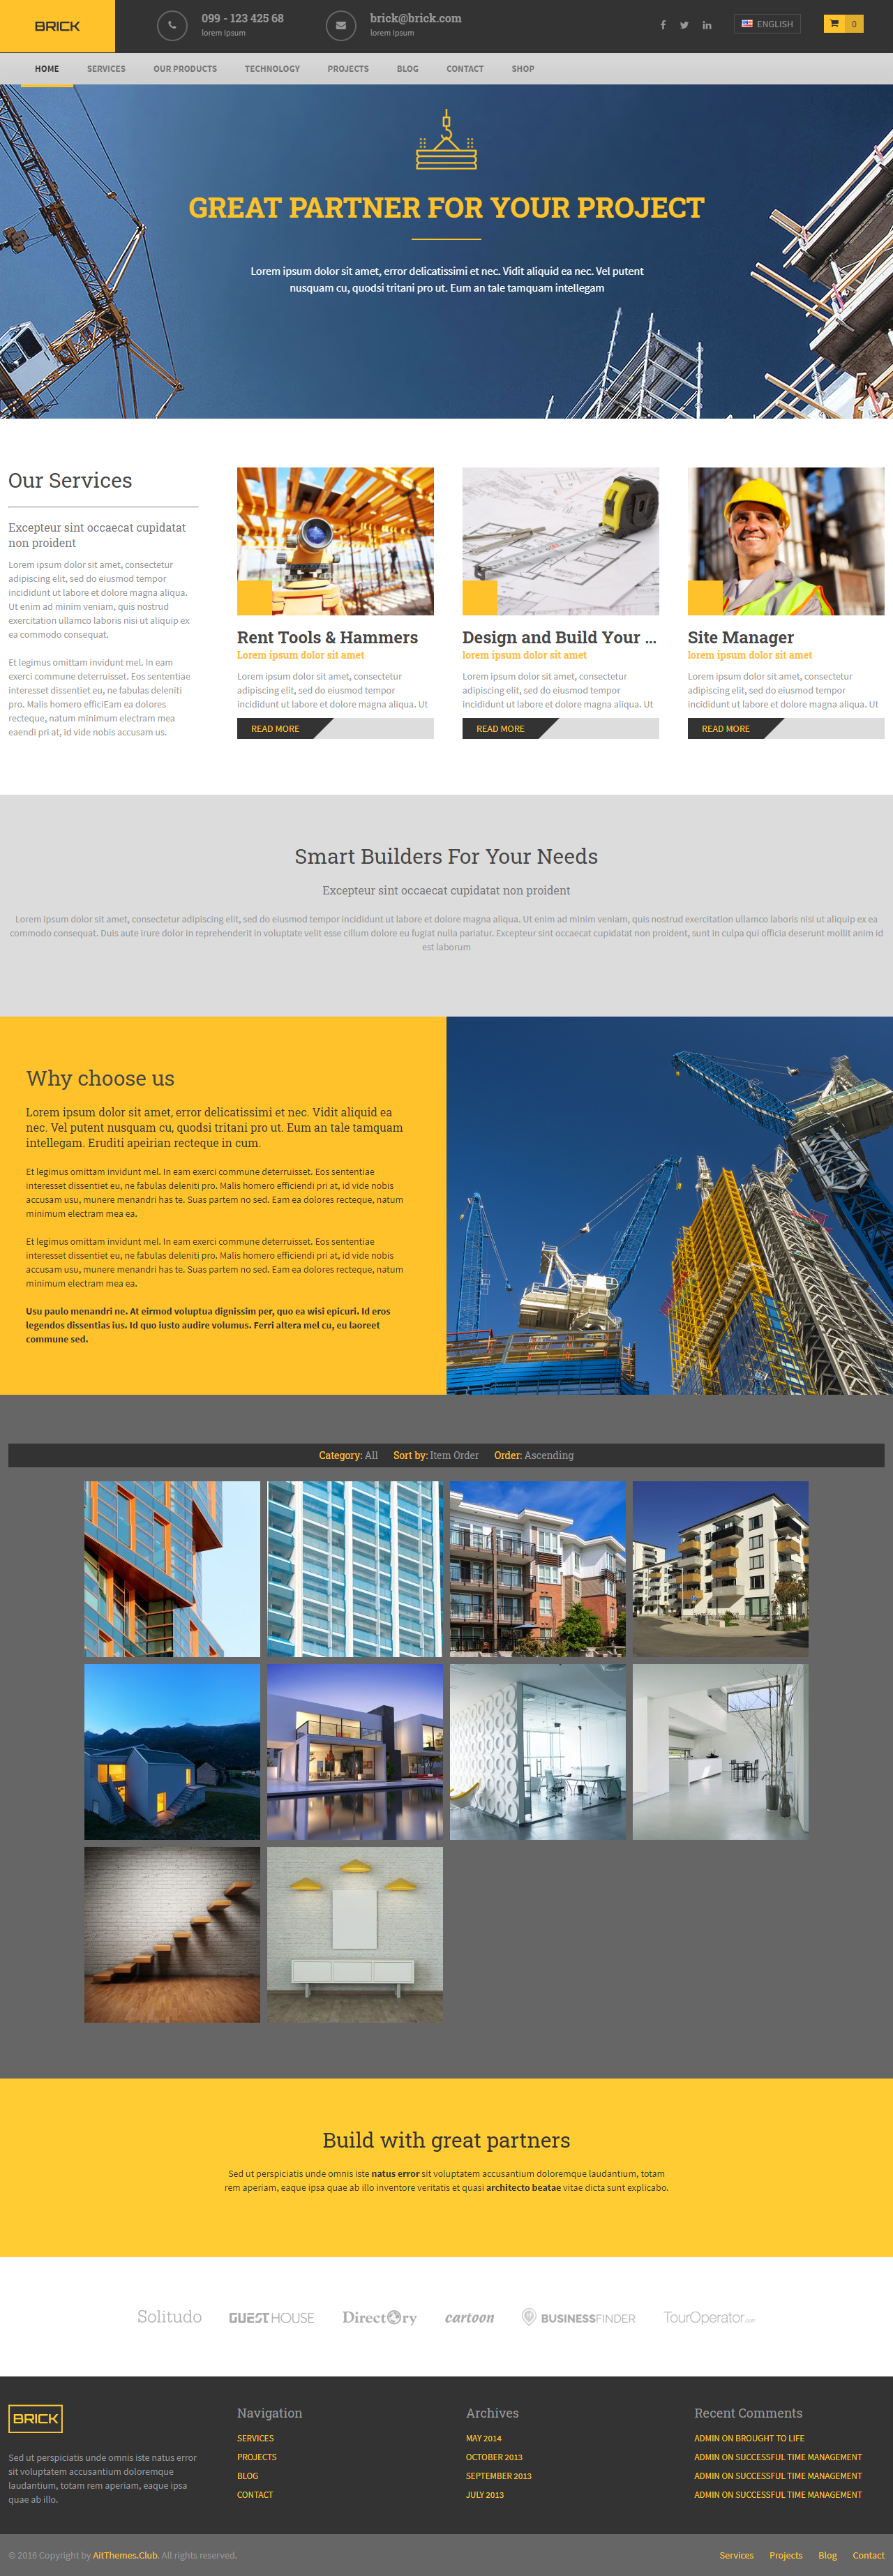 brick Wordpress Theme web design services in pune Web Design Services in Pune Theme for Builders